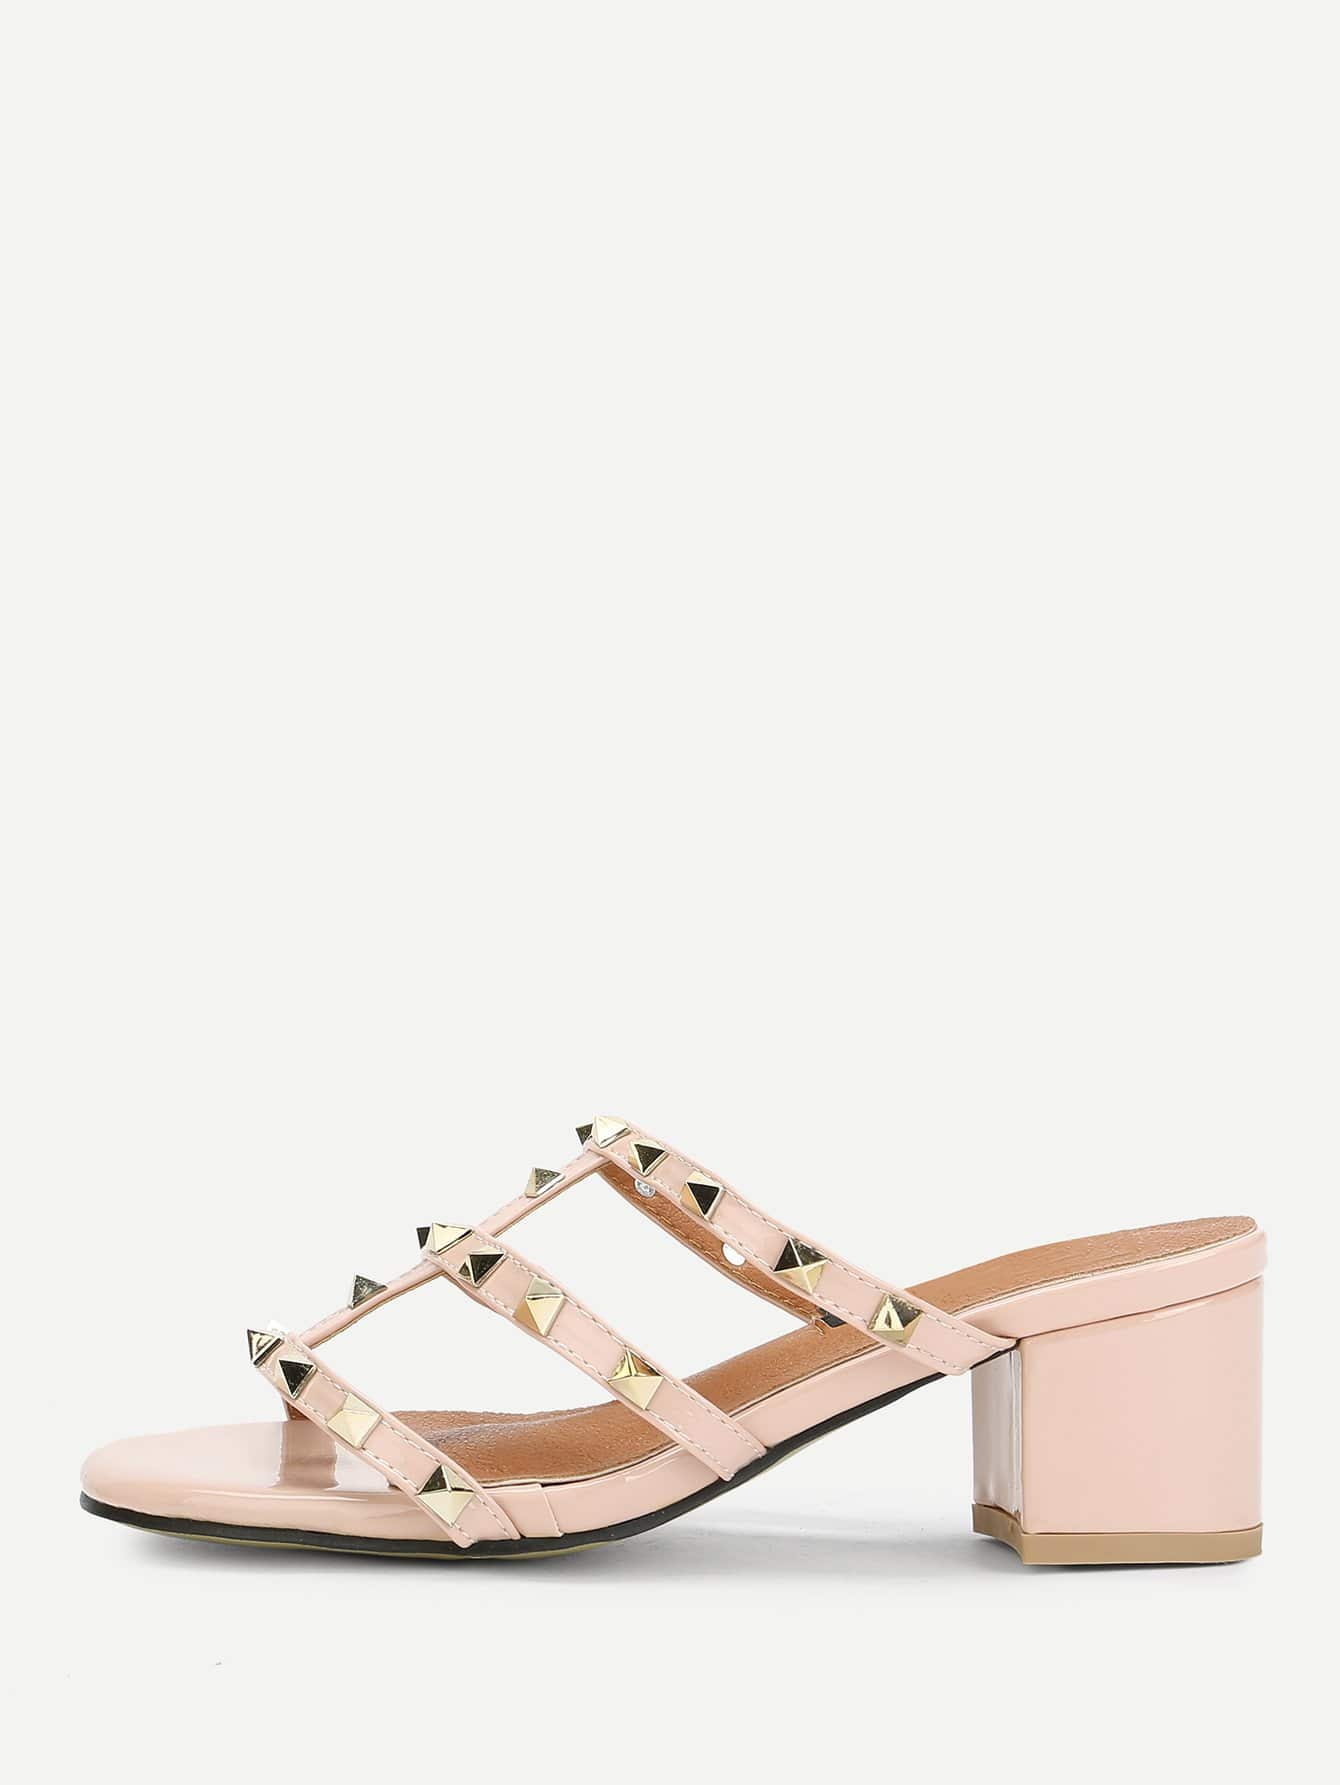 Rivet Detail Strappy Heeled Sandals rhinestone detail strappy sandals